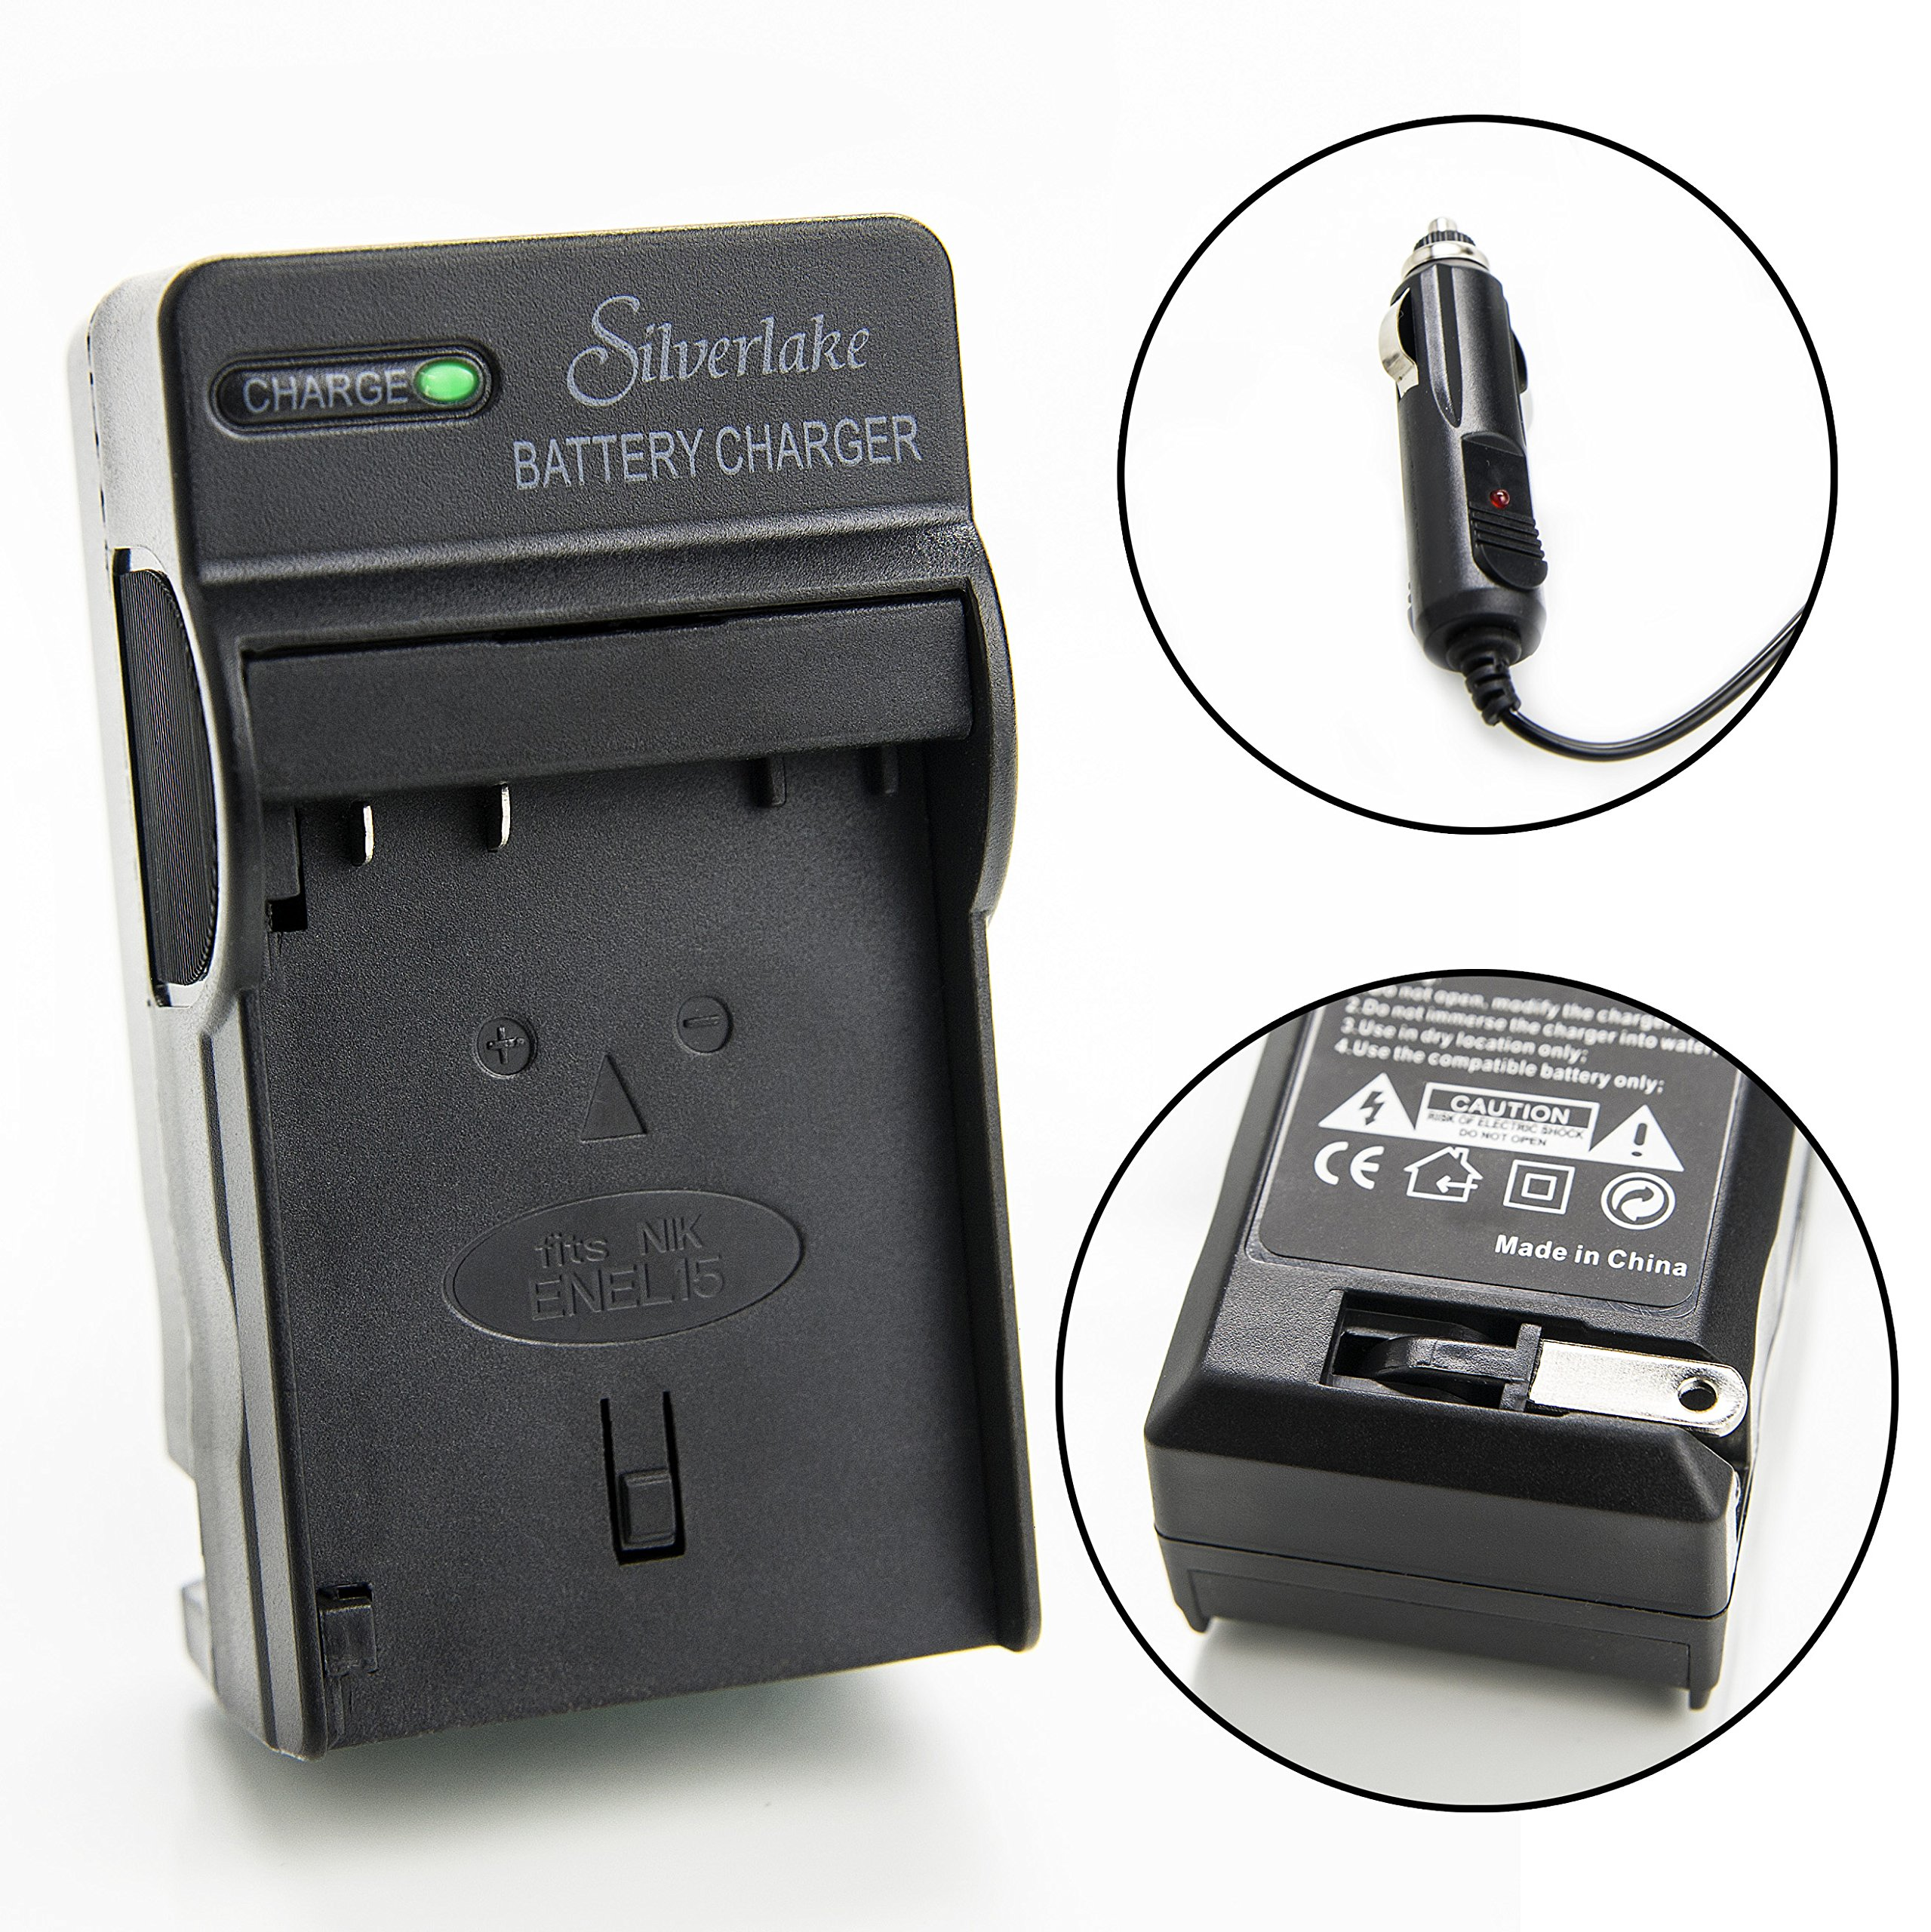 Cheap Camera Charger Walmart find Camera Charger Walmart deals on